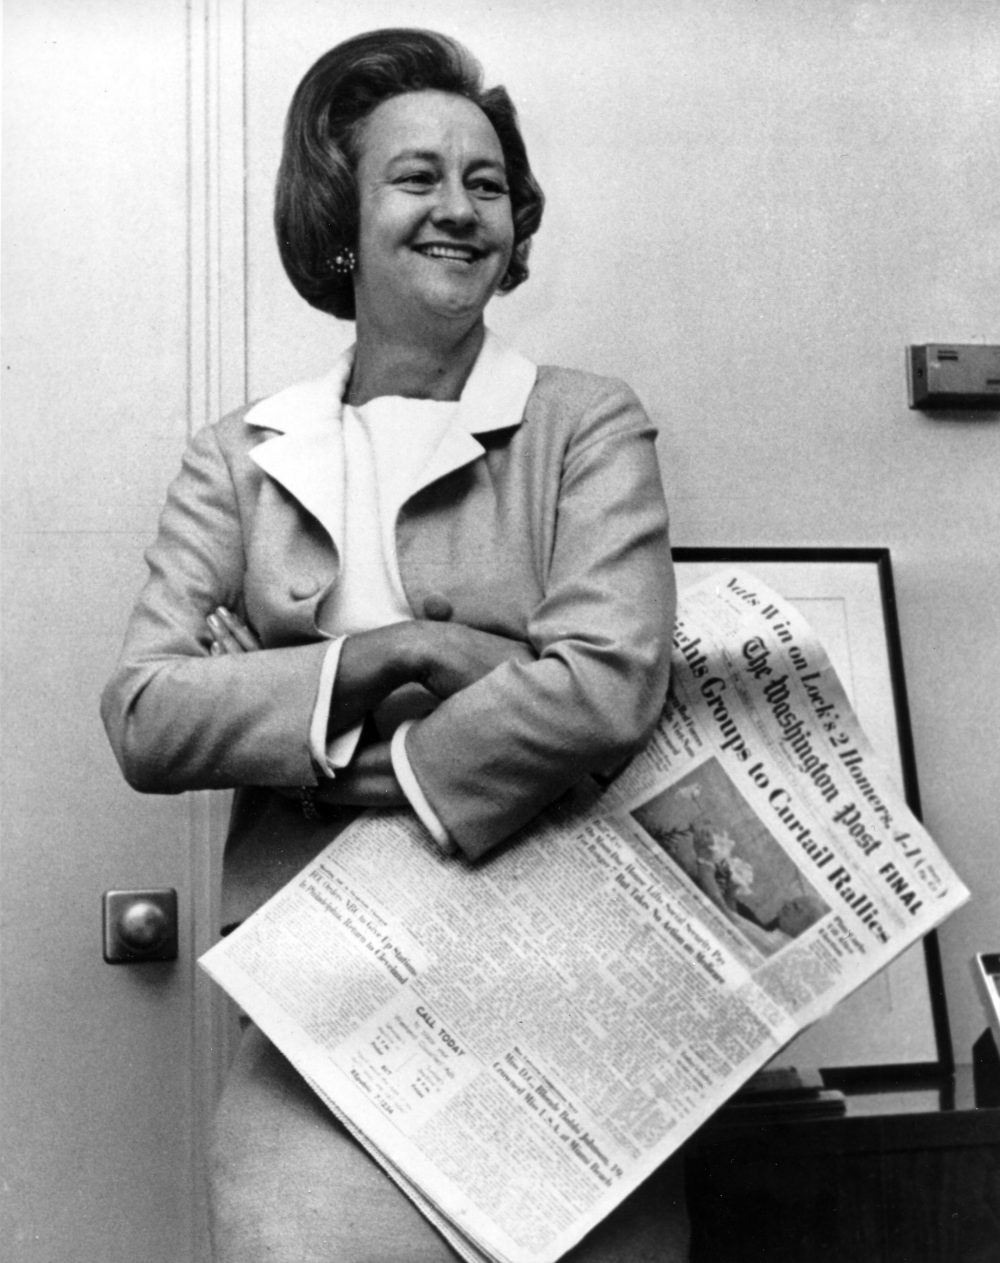 Katharine Meyer Graham, president of The Washington Post, poses in her office in Washington, D.C., on Aug. 3, 1964. (AP Photo)